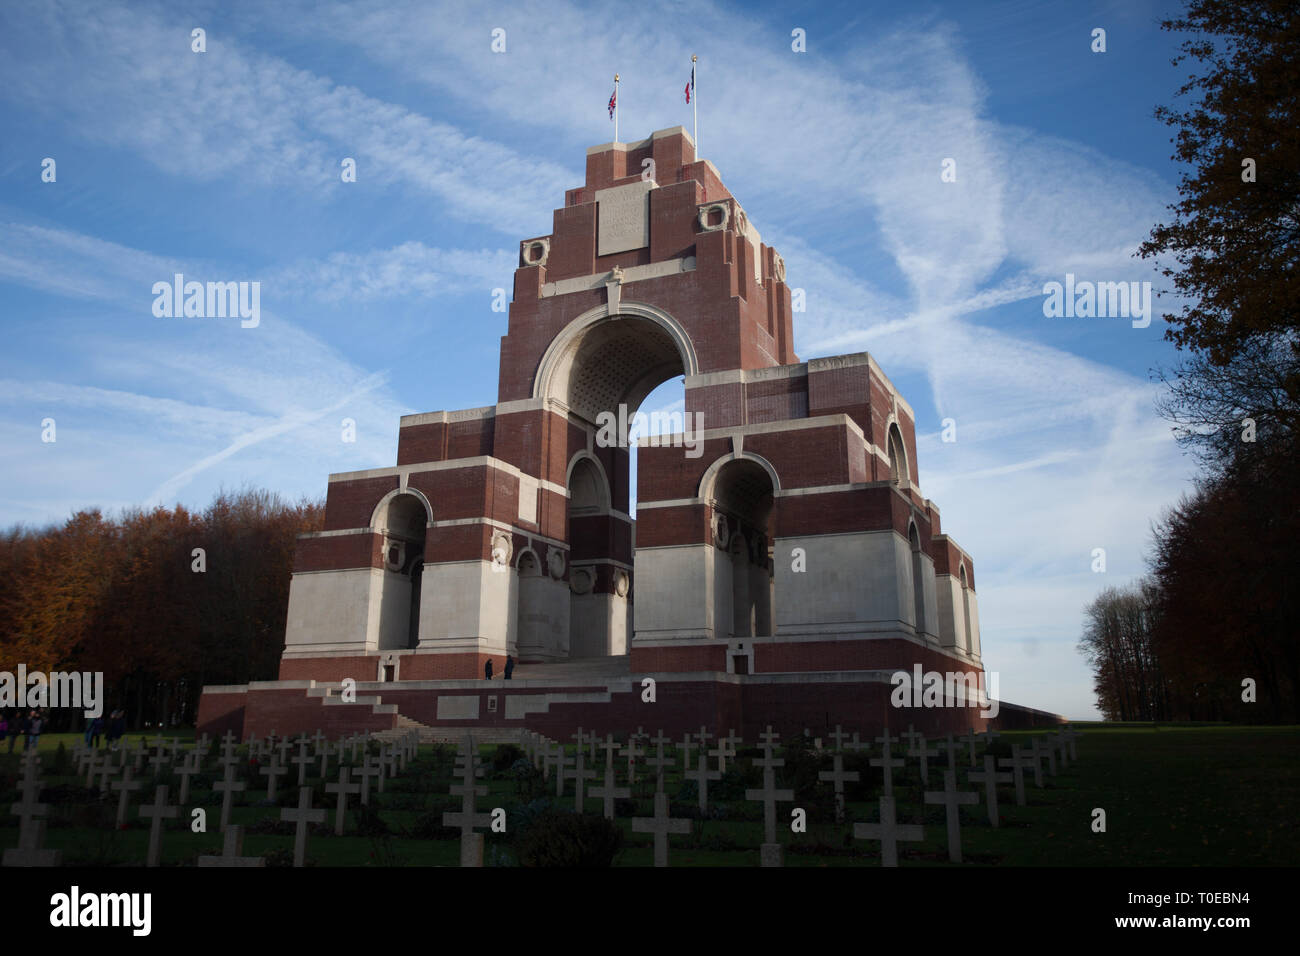 The Theipval memorial commemorates more than 72,000 troops who died in the Somme sector before 20 March 1918 and have no known graves. - Stock Image